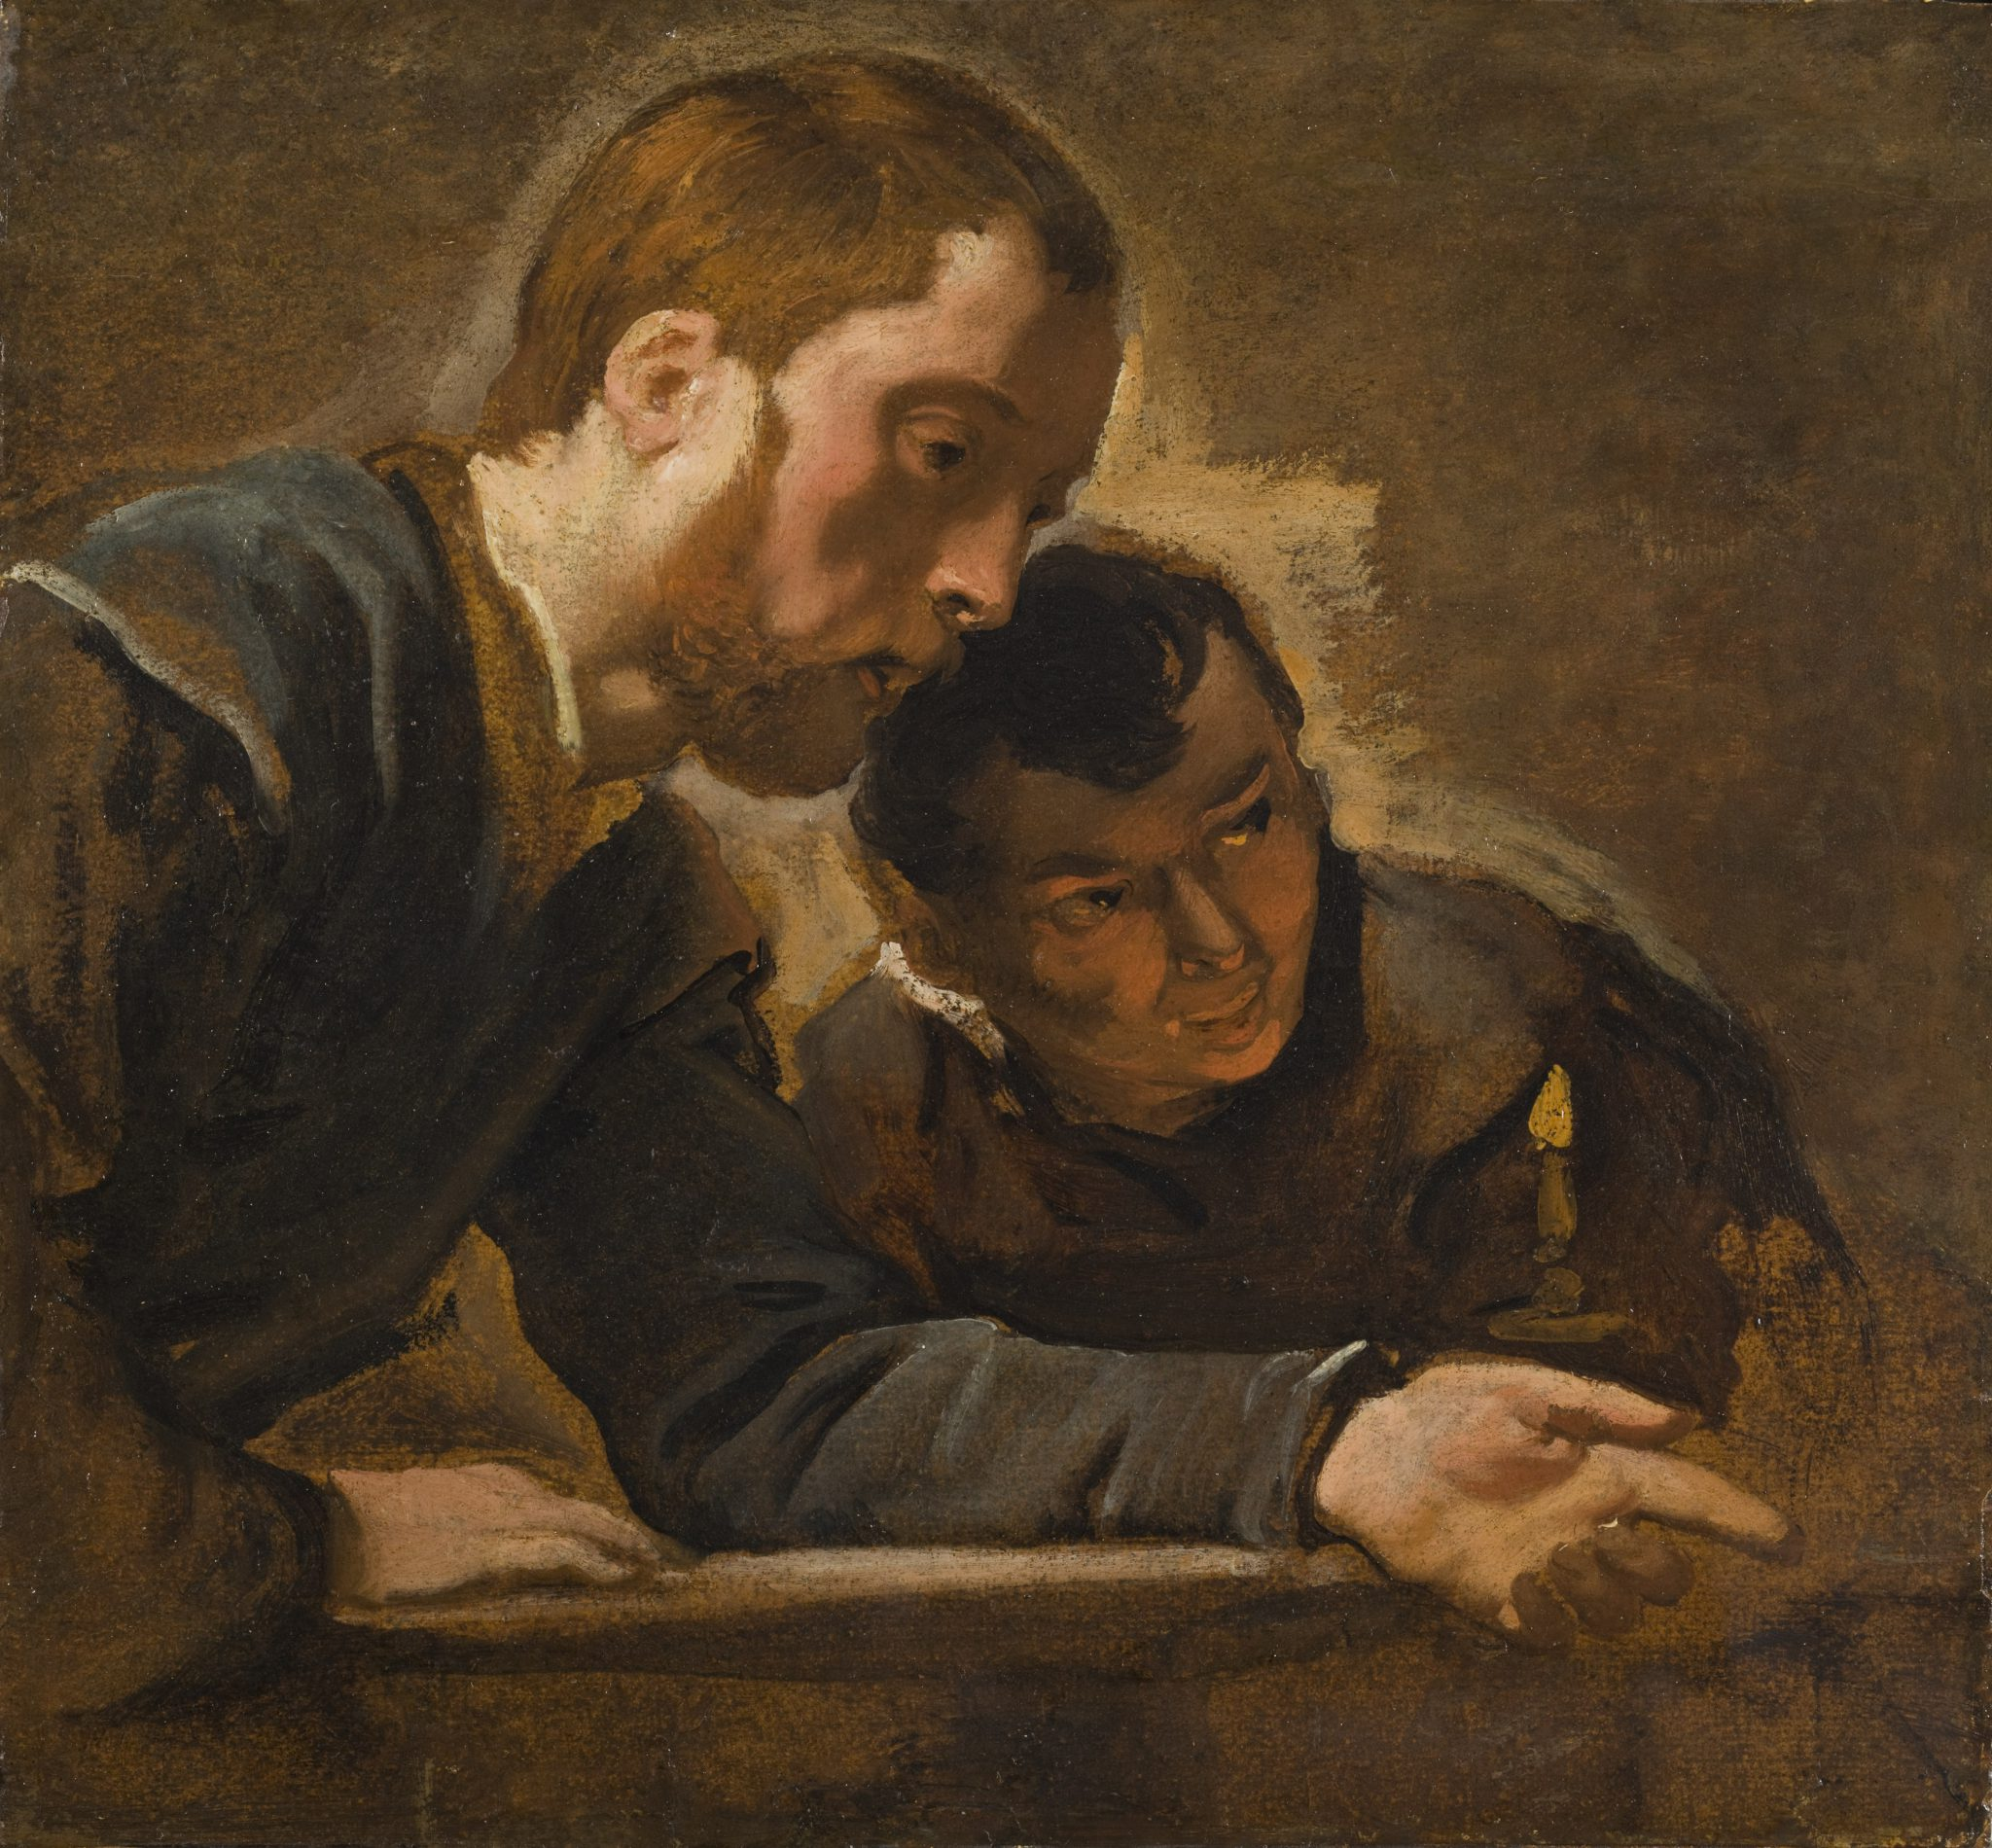 Study of two men